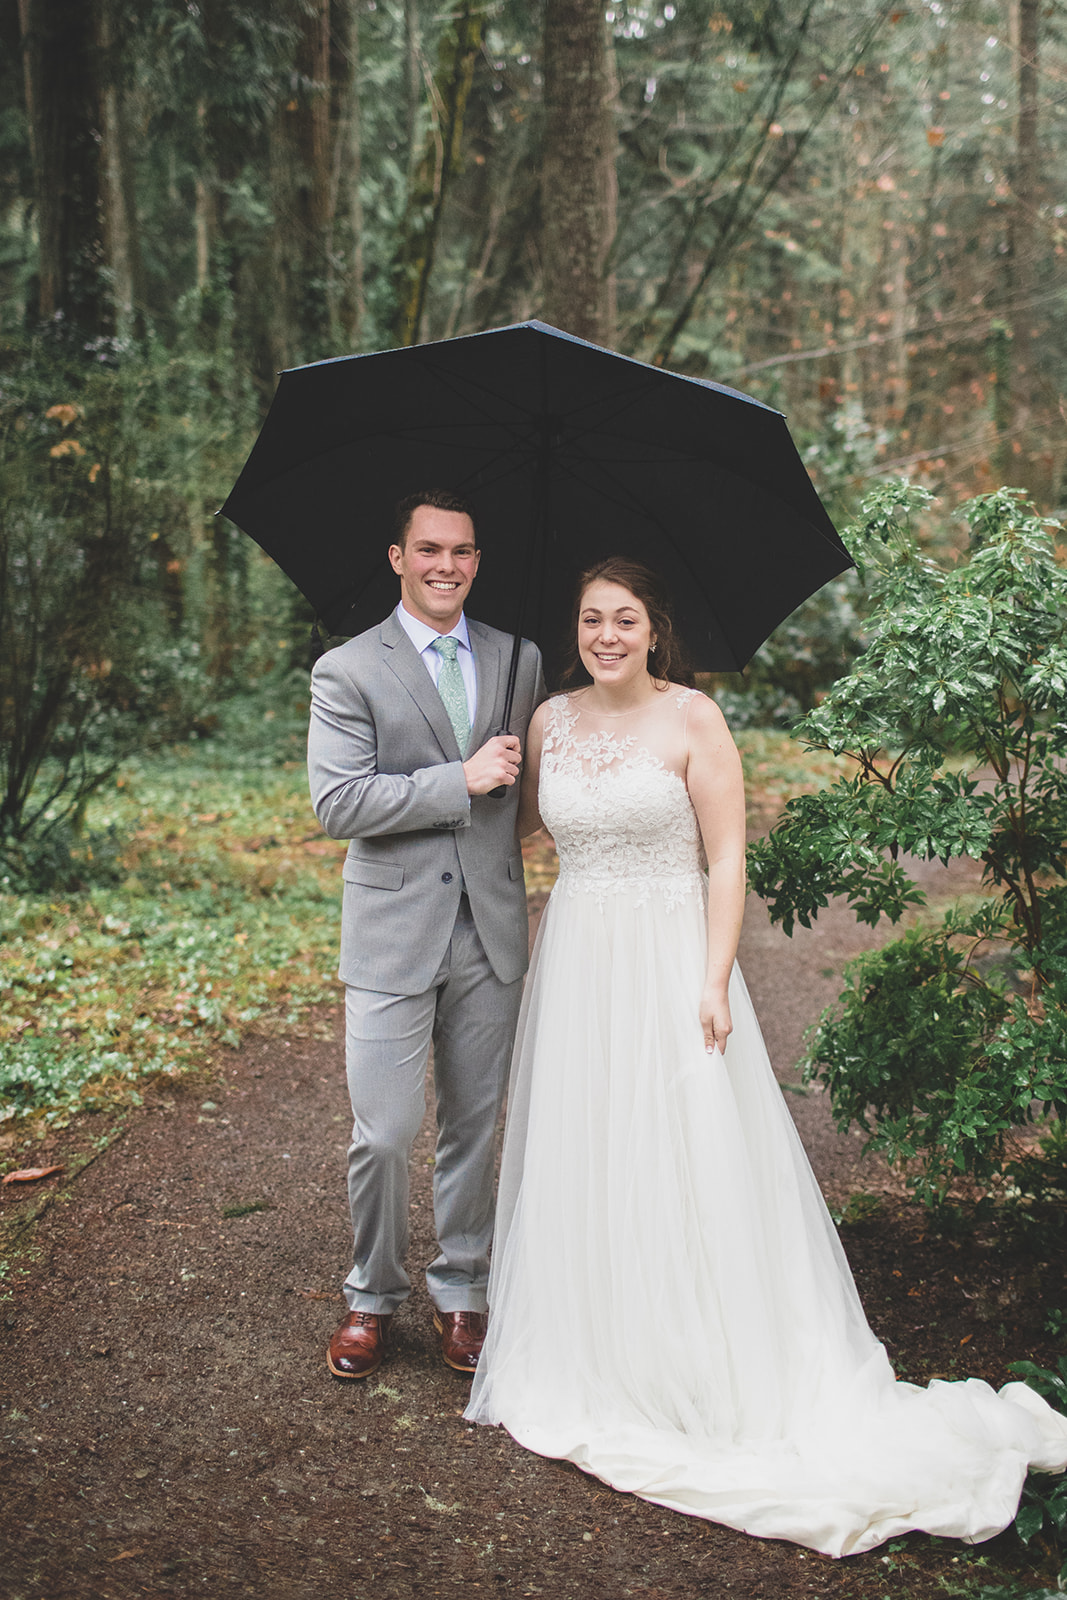 rainy couple wedding december bride spokane